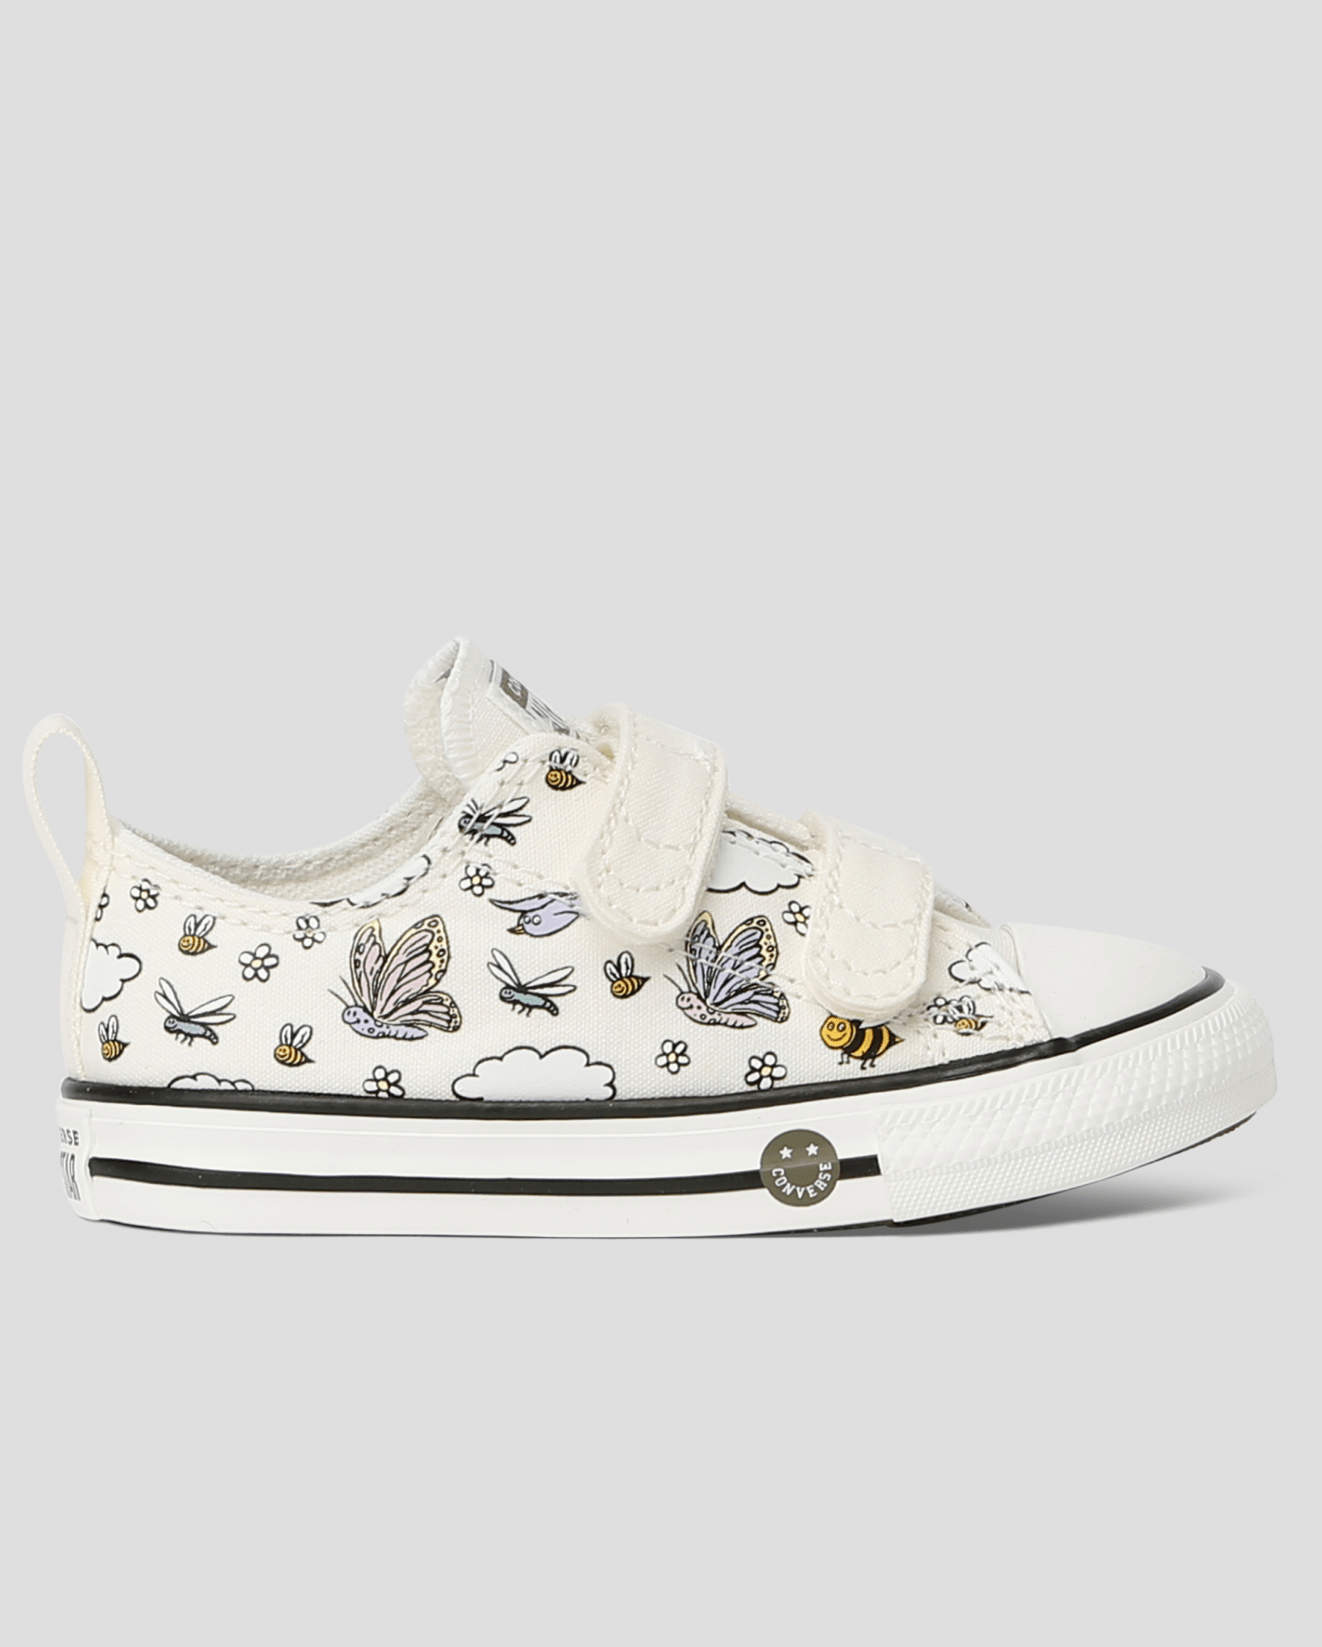 Chuck Taylor All Star 2V Camp Converse Toddler Low Top Vintage White